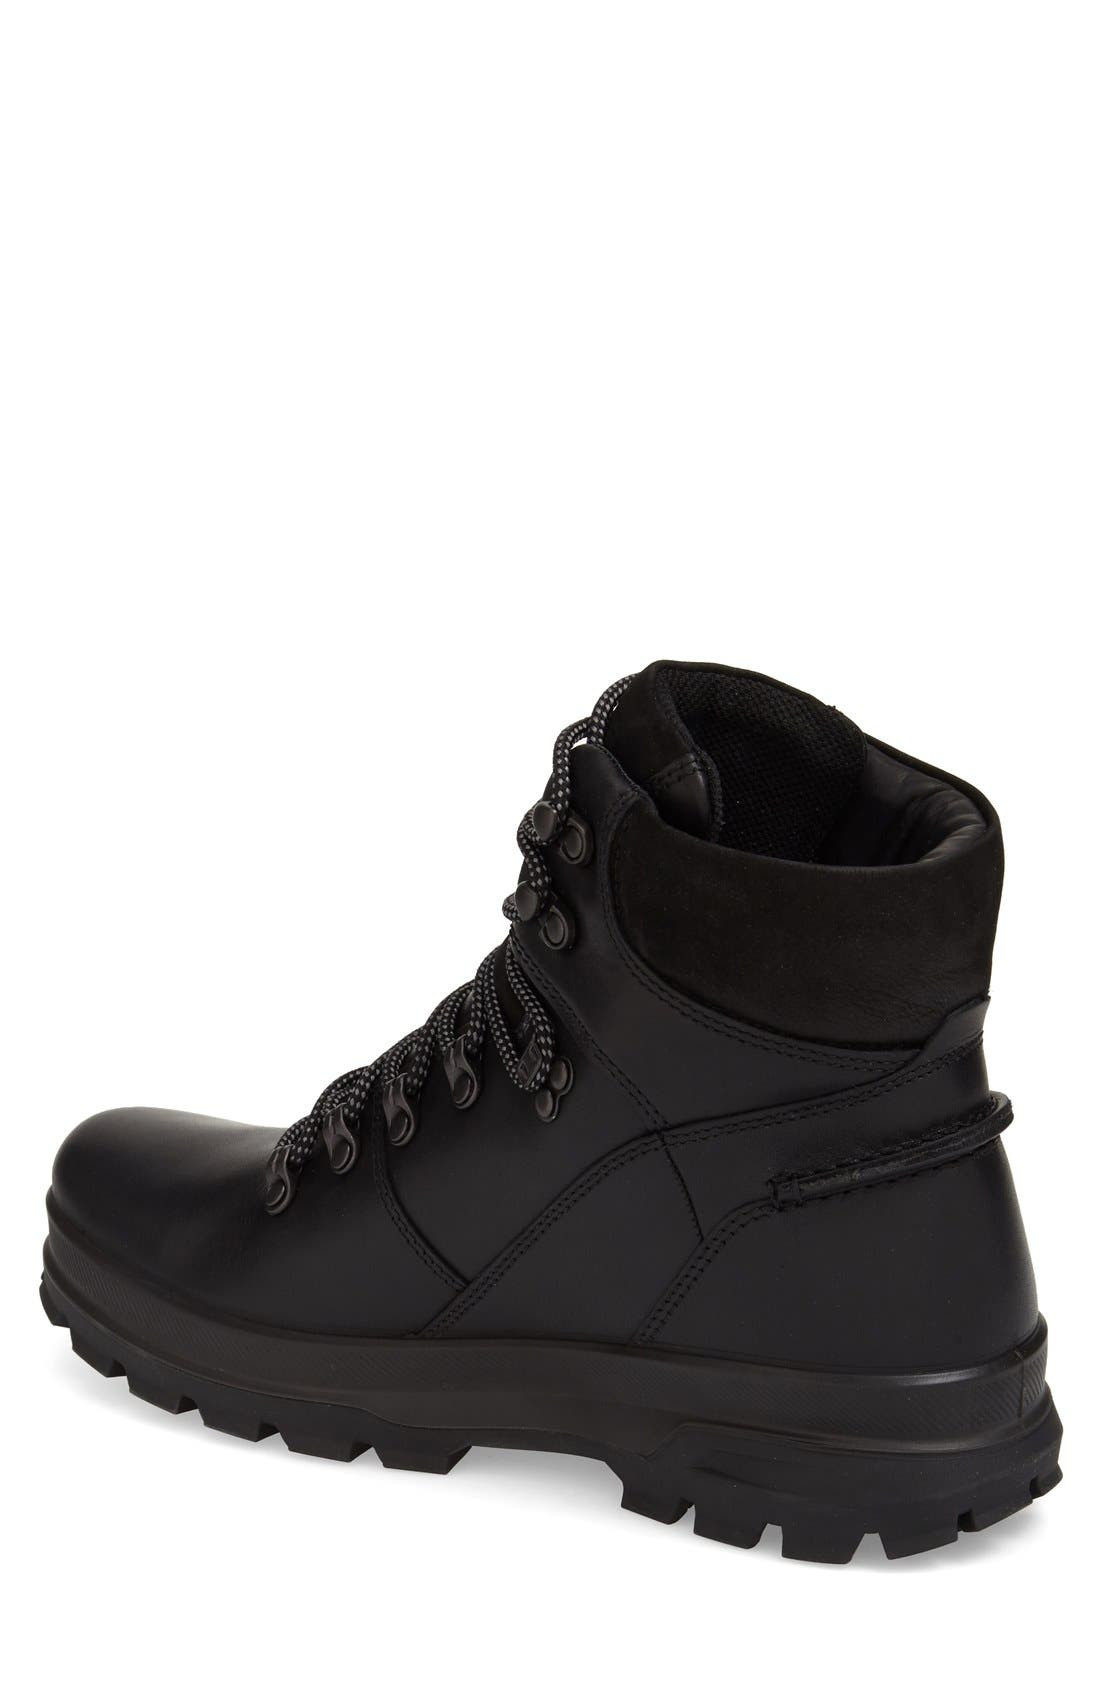 'Rugged Track GTX' Hiking Boot,                             Alternate thumbnail 2, color,                             001